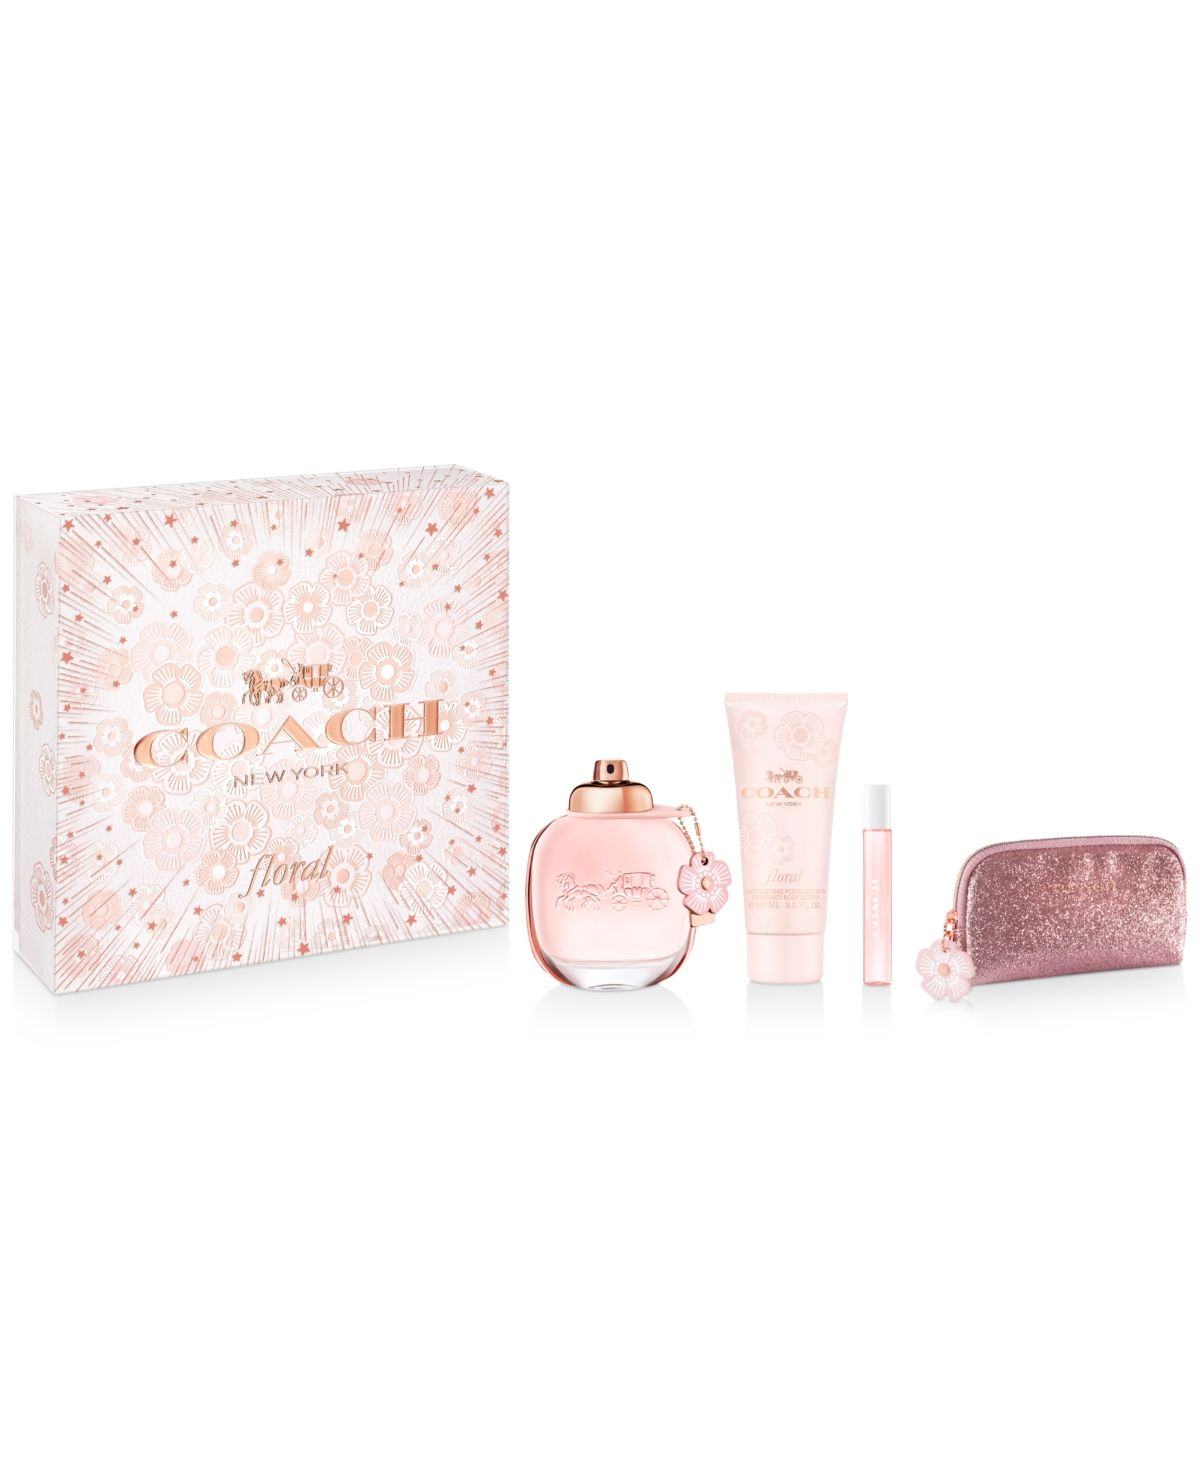 Coach Floral Eau De Parfum Is Inspired By Coach S Signature Leather Tea Roses Combining Fruity And Floral Notes Perfume Gift Sets Coach Floral Fragrance Gift